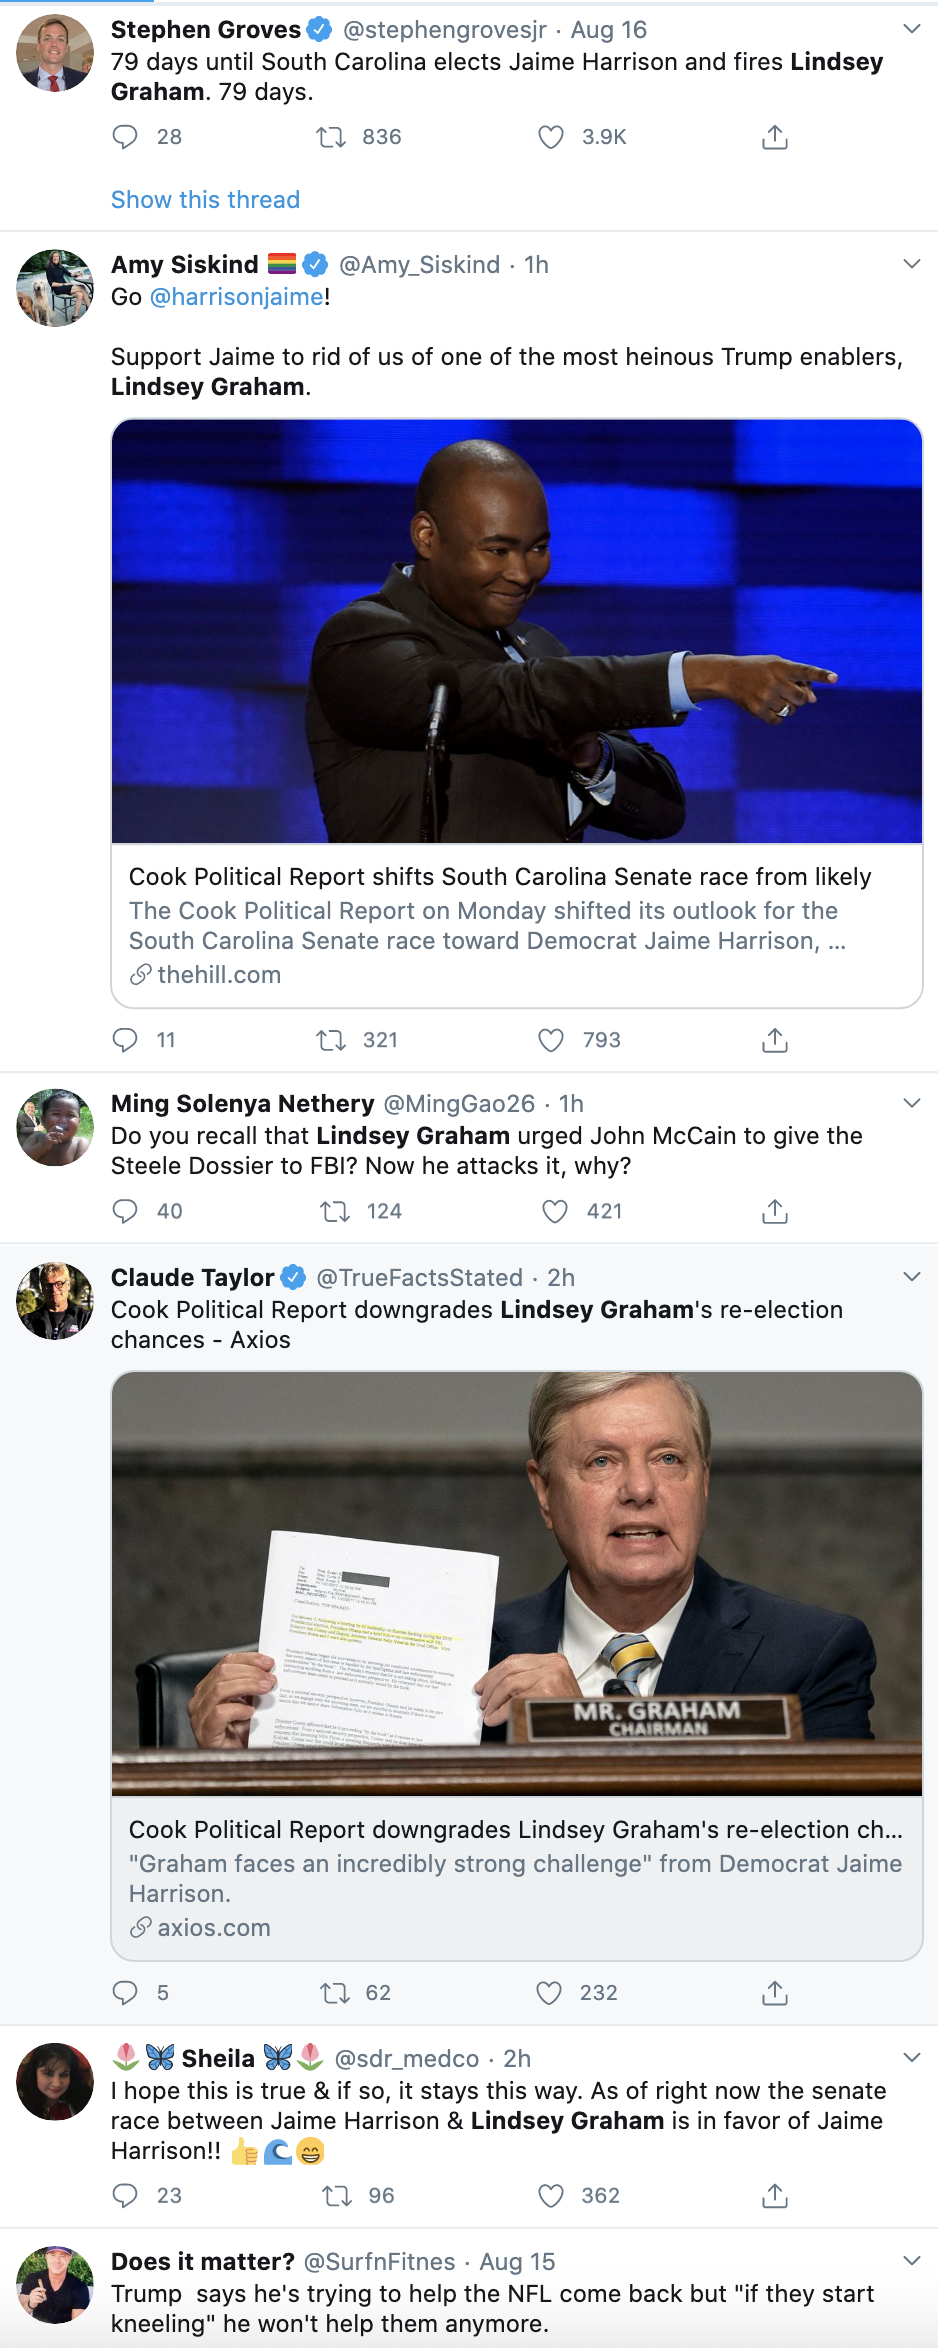 Screen-Shot-2020-08-17-at-11.15.56-AM Lindsey Graham's 2020 Re-Election Chances Take Major Blow Election 2020 Featured Politics Racism Top Stories